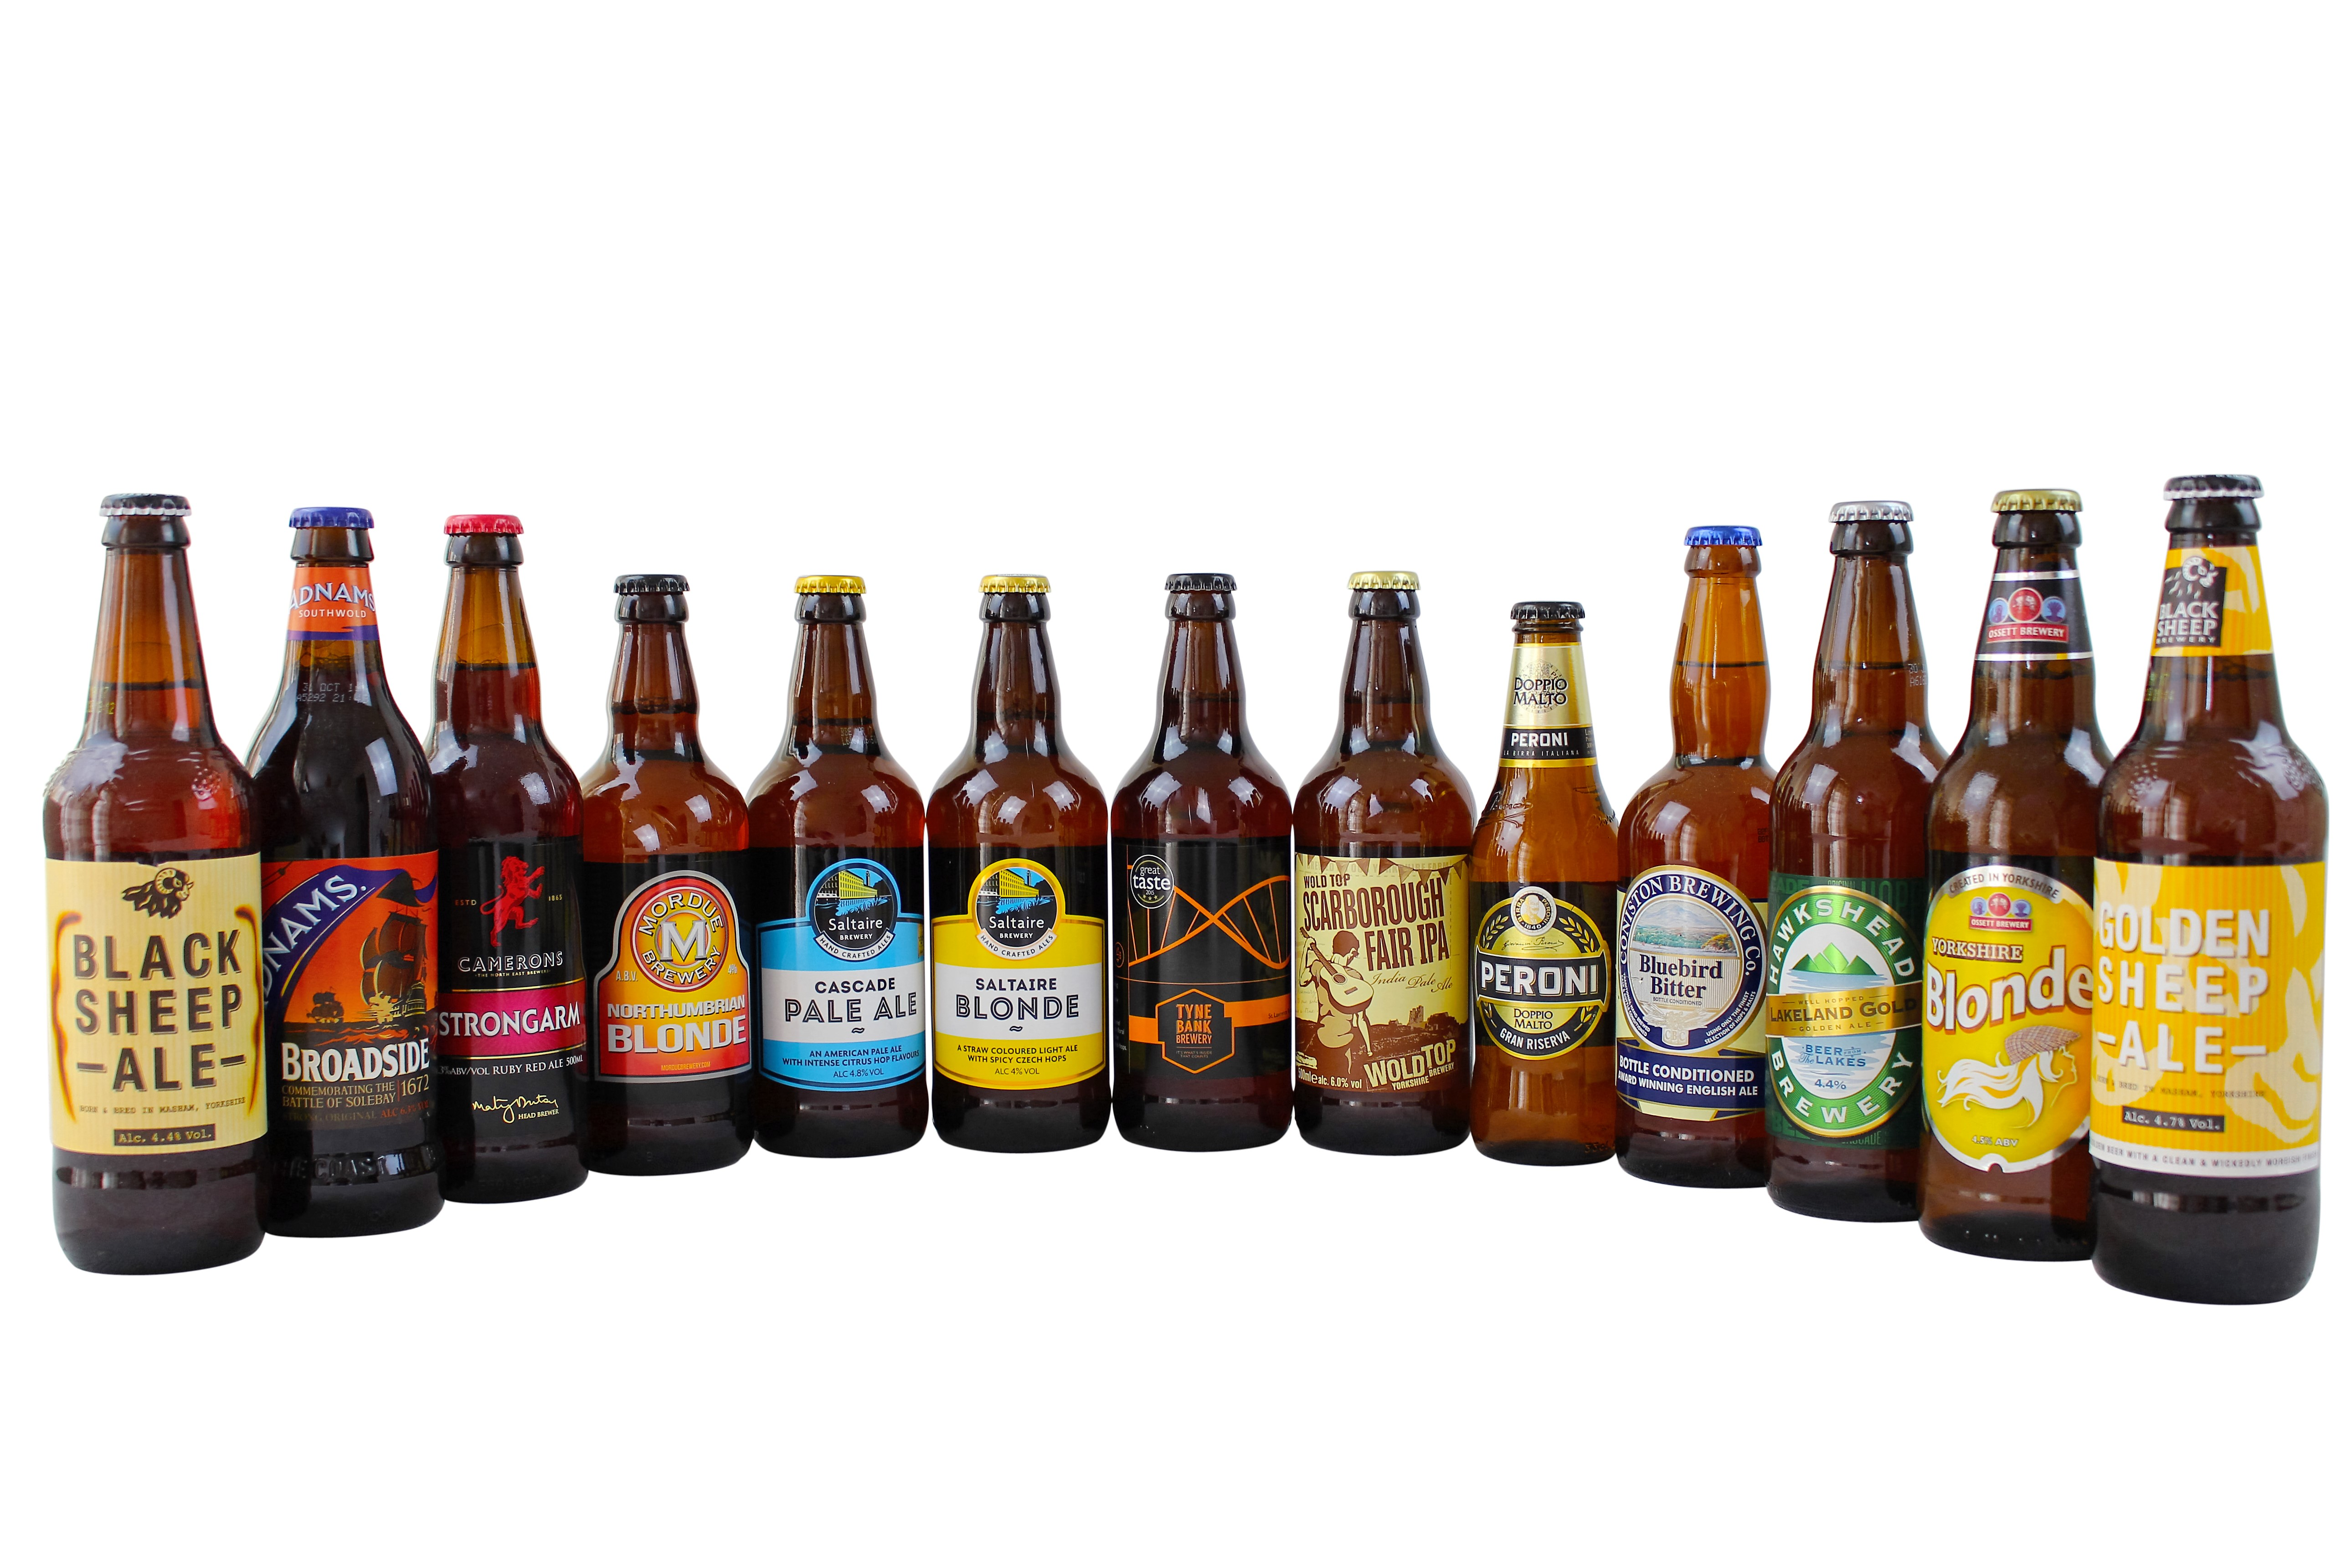 Beer gift hamper that includes real ales too. Choose your beer from our huge selection and match it to some tasty nibbles for the perfect gift.